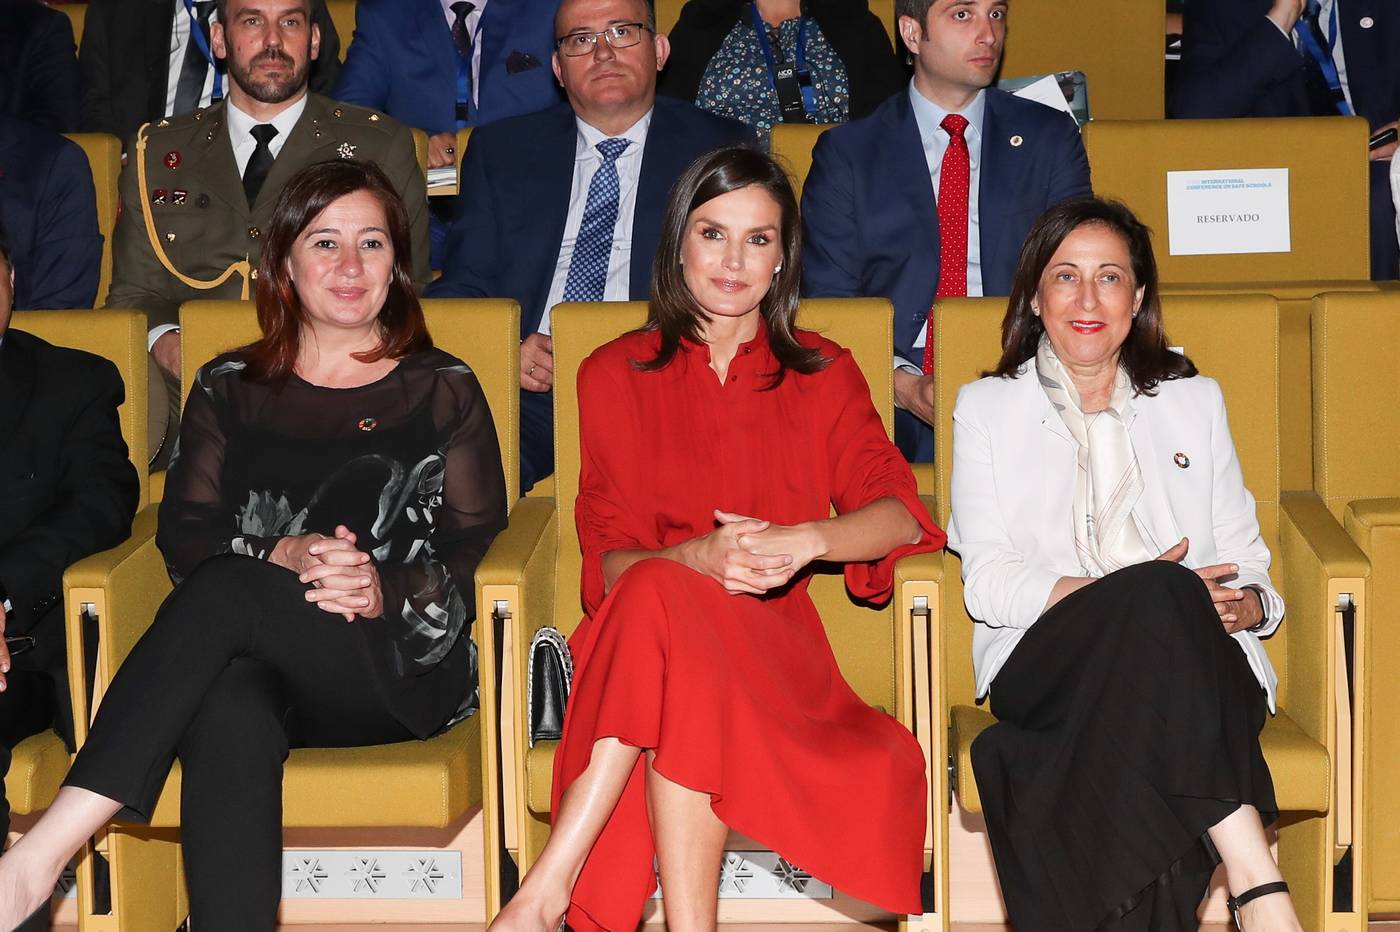 Queen Letizia attends the closure of the 'International Conference On Safe Schools' in Palma de Mallorca